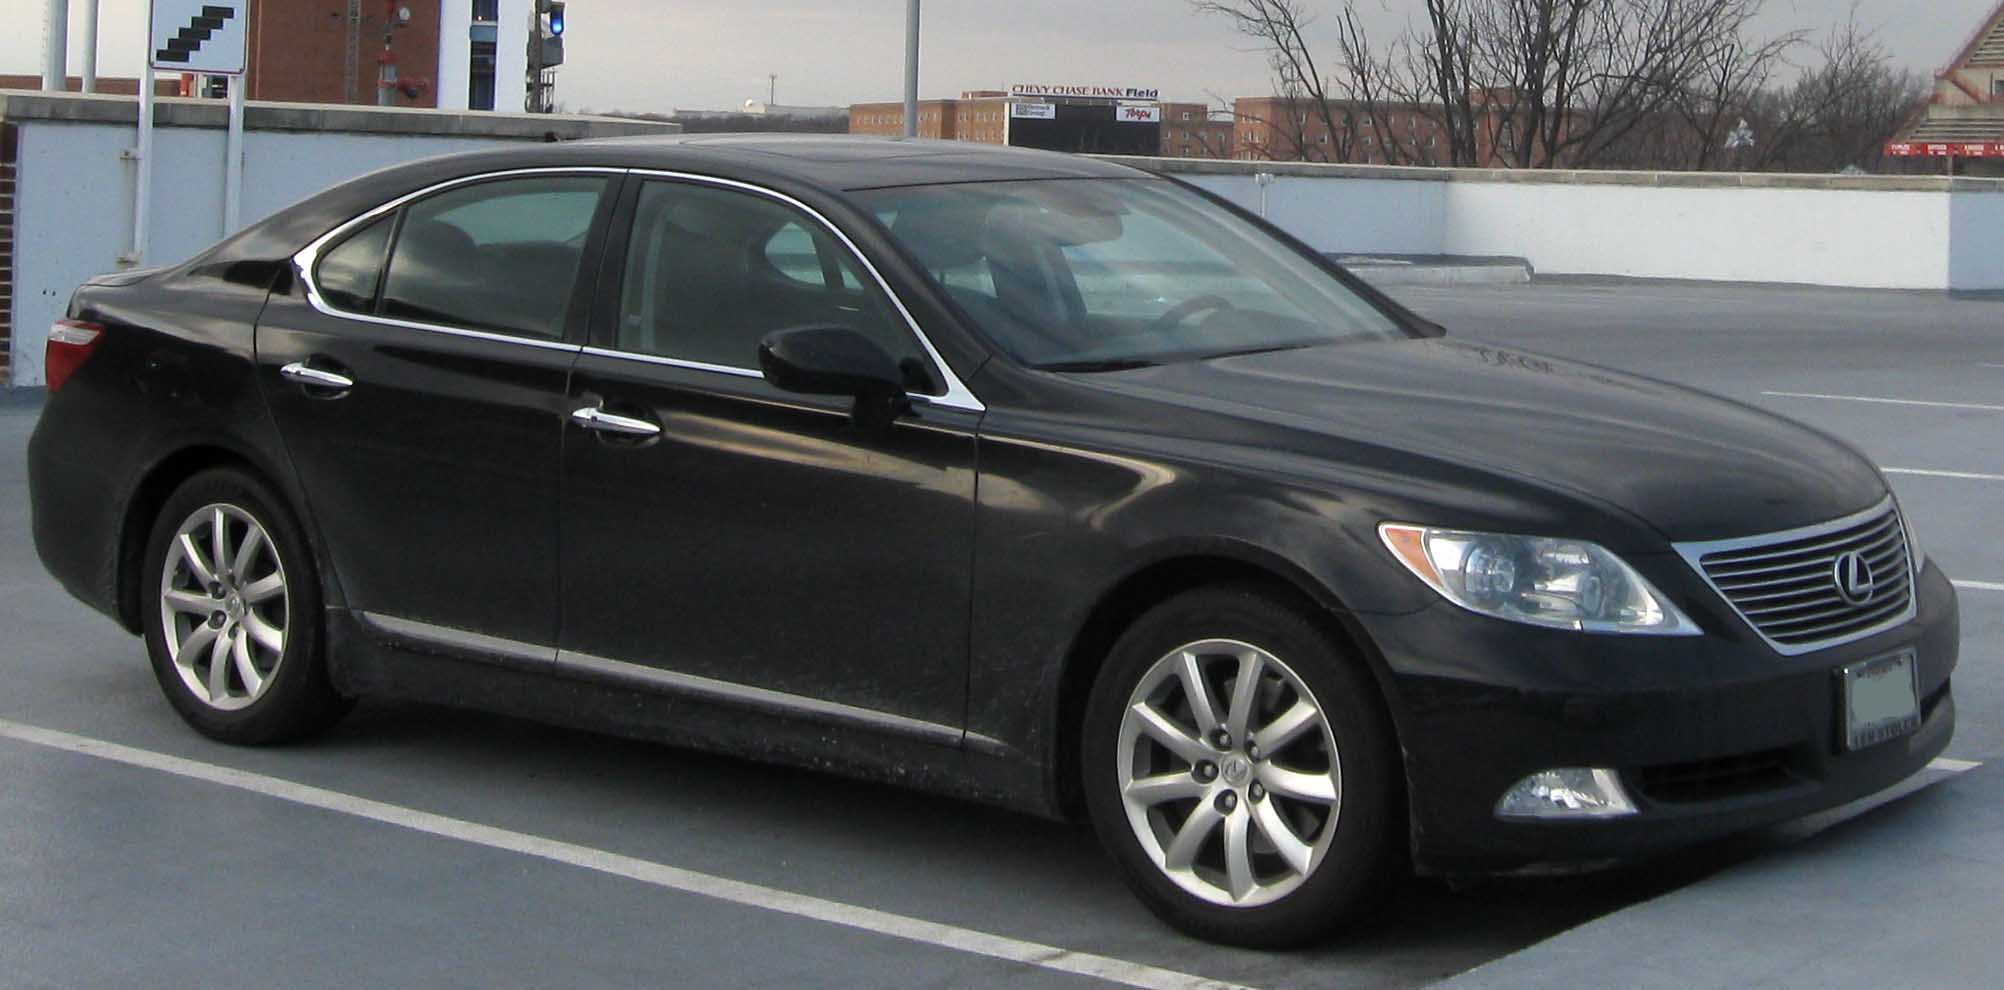 File:Lexus LS460 .jpg - Wikimedia Commons